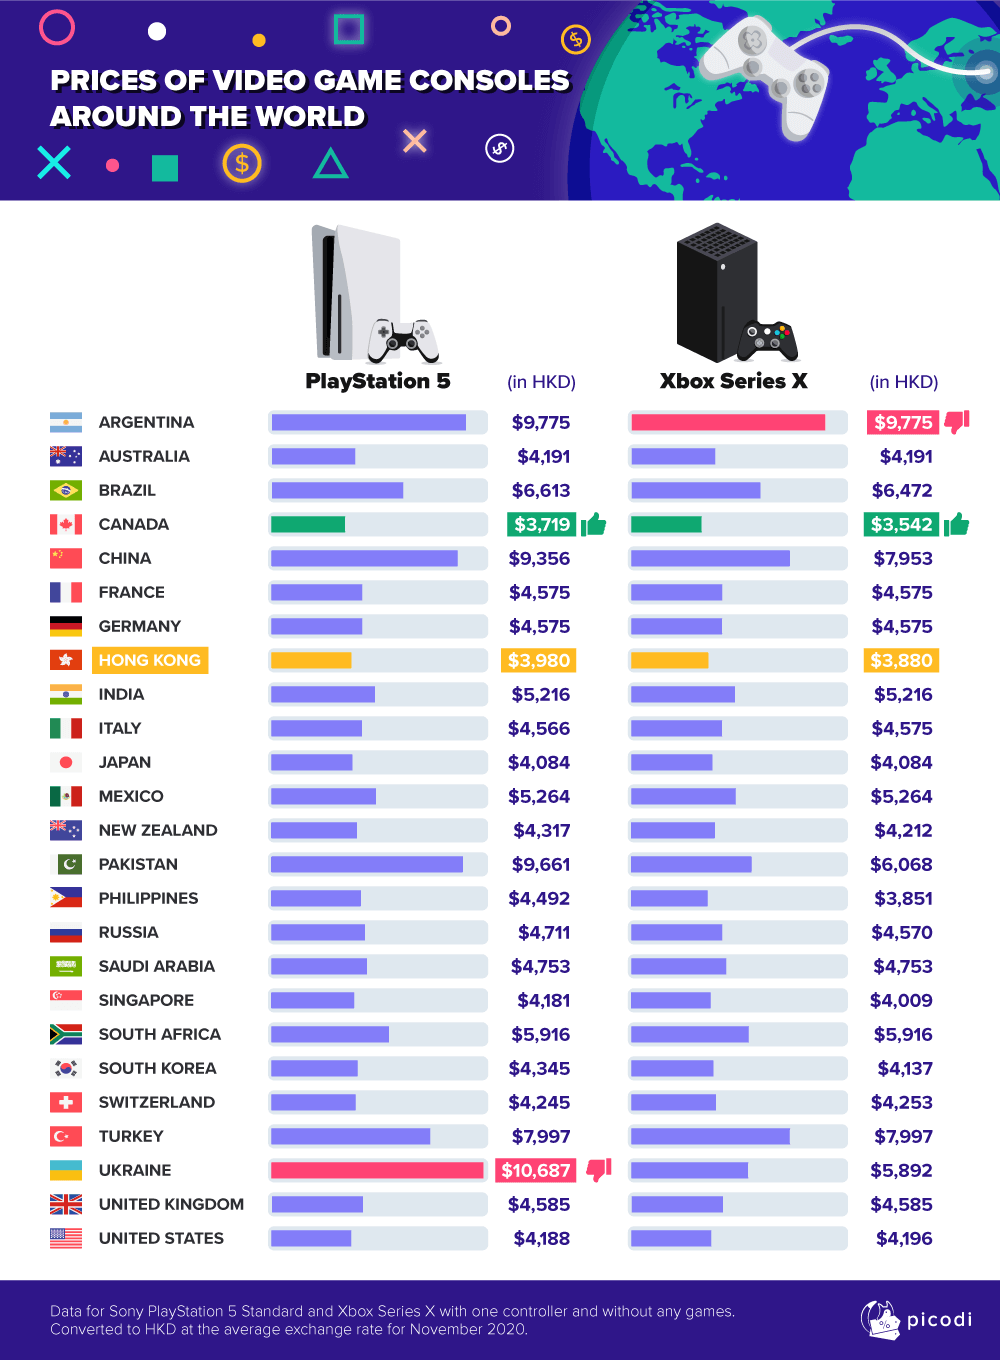 Difference in prices of PS5 and Xbox Series X around the world